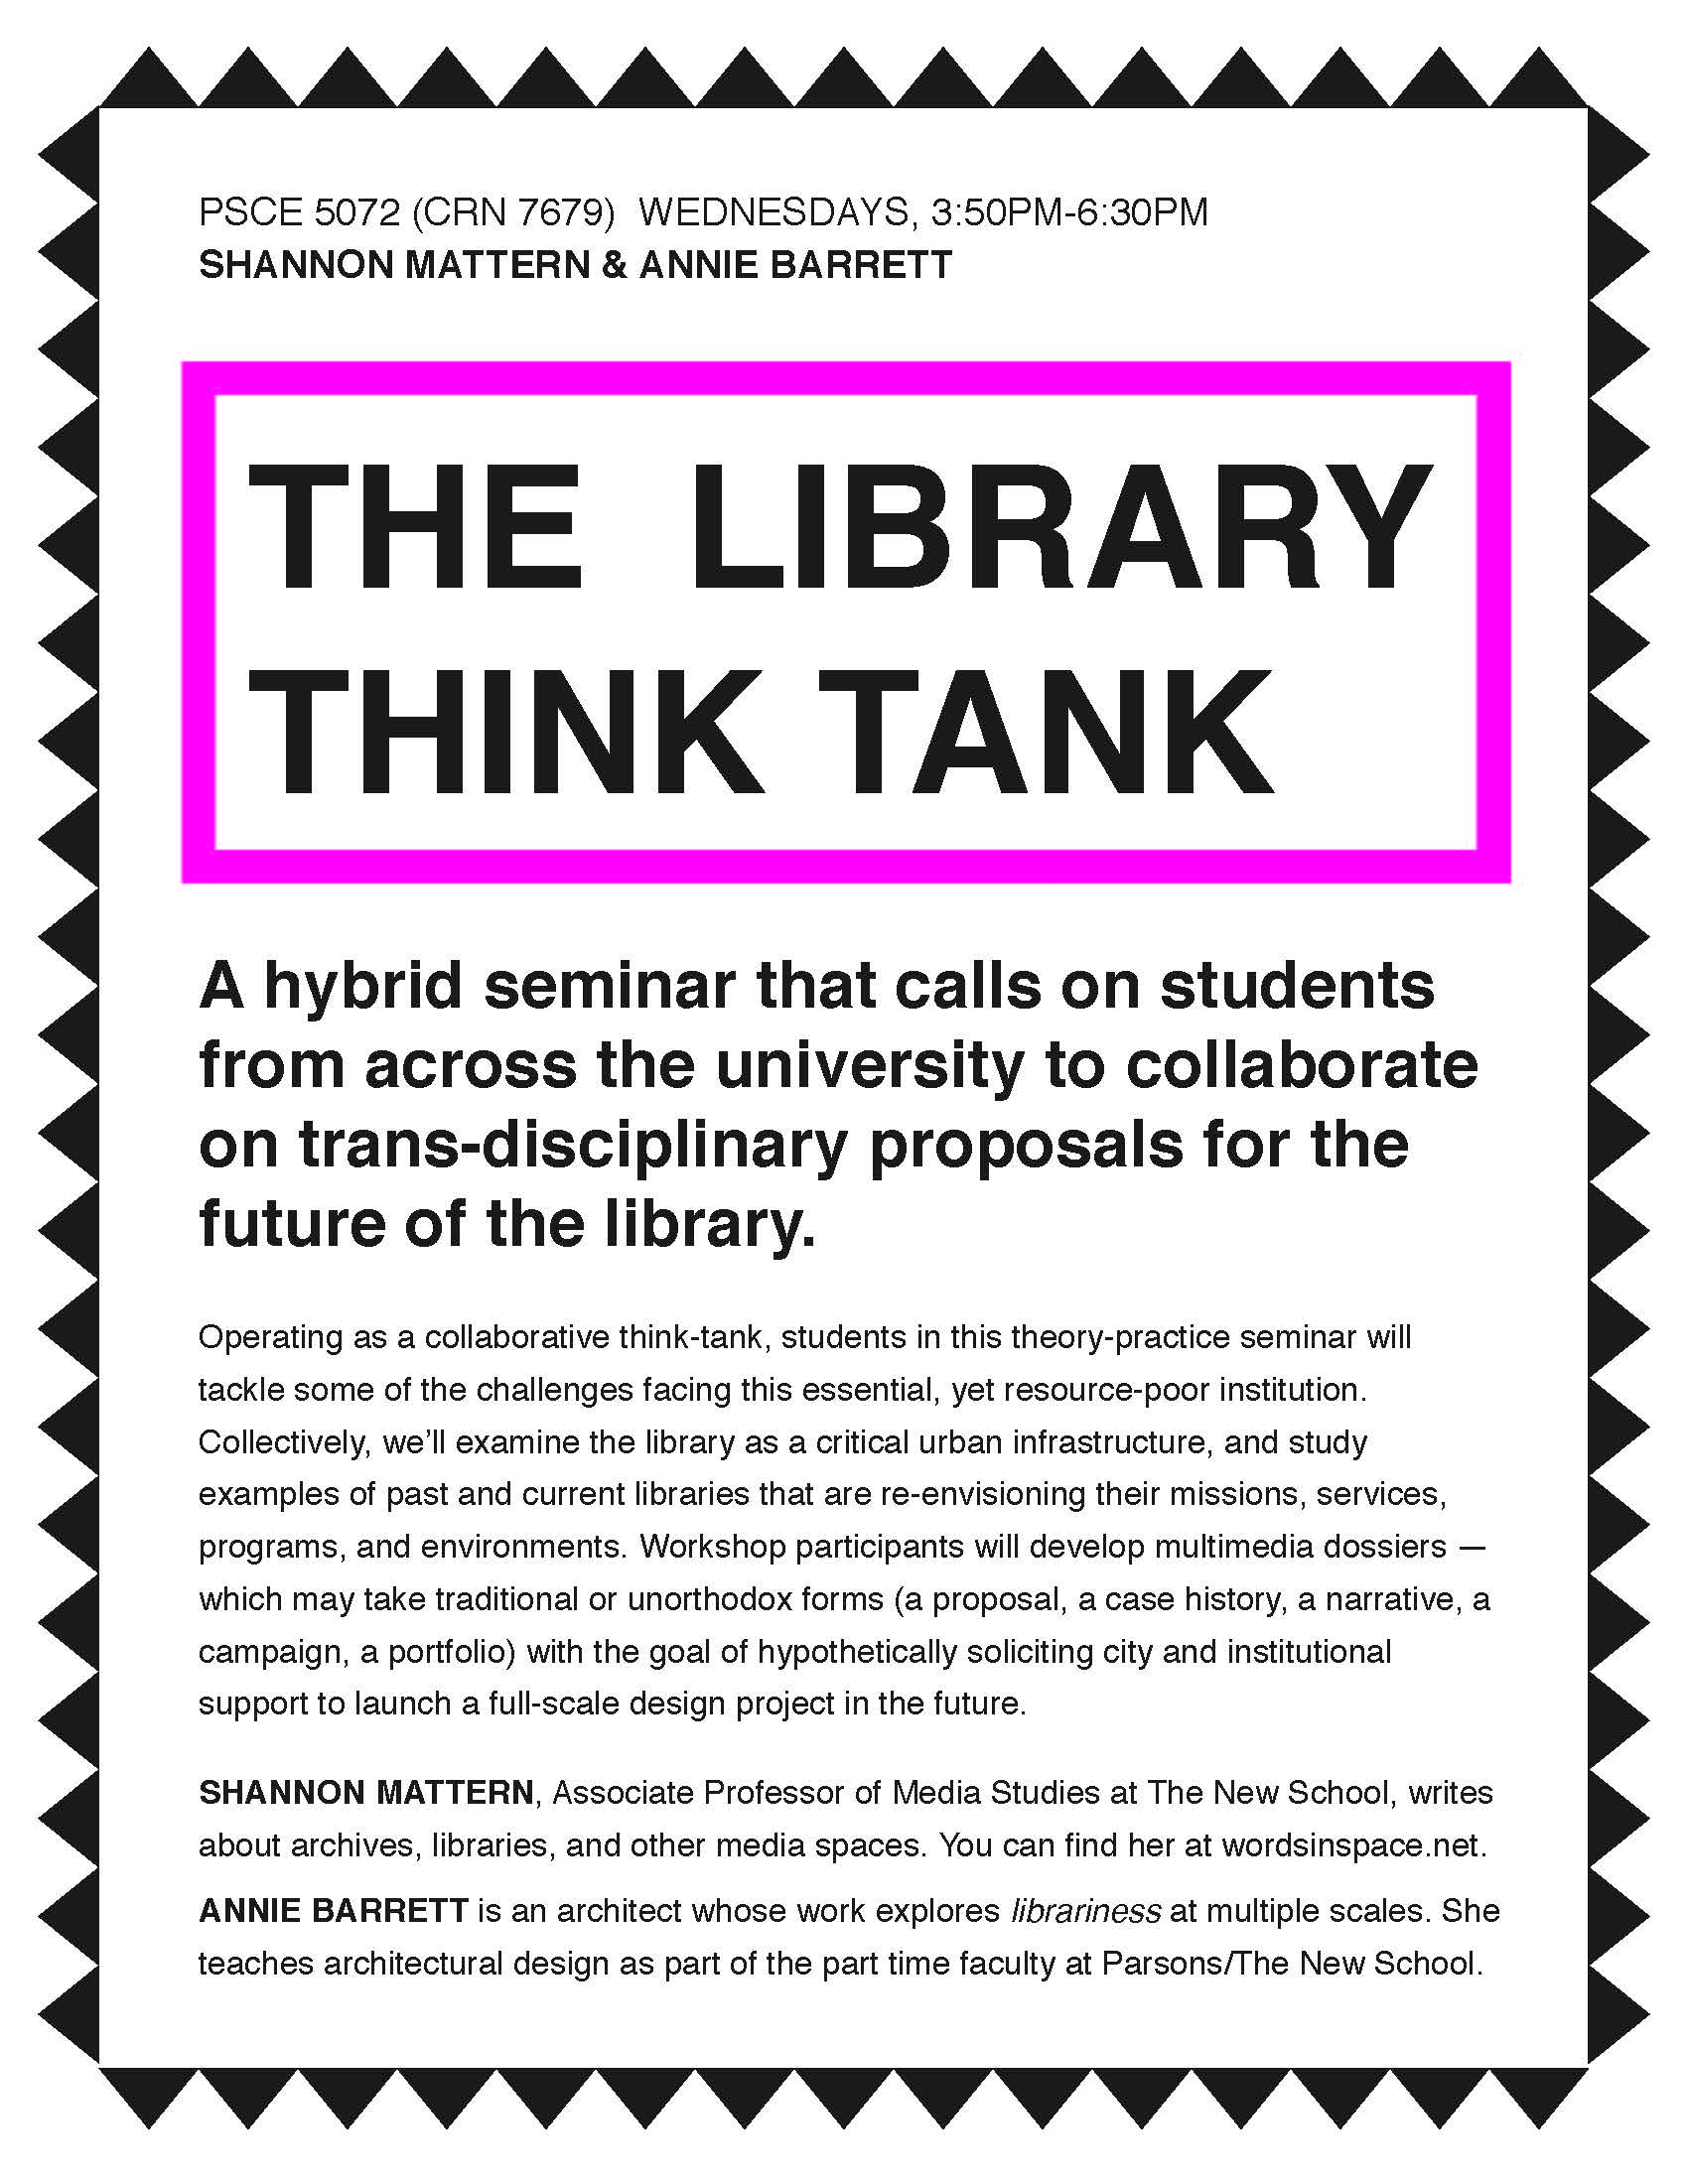 THE LIBARARY THINK TANK Poster